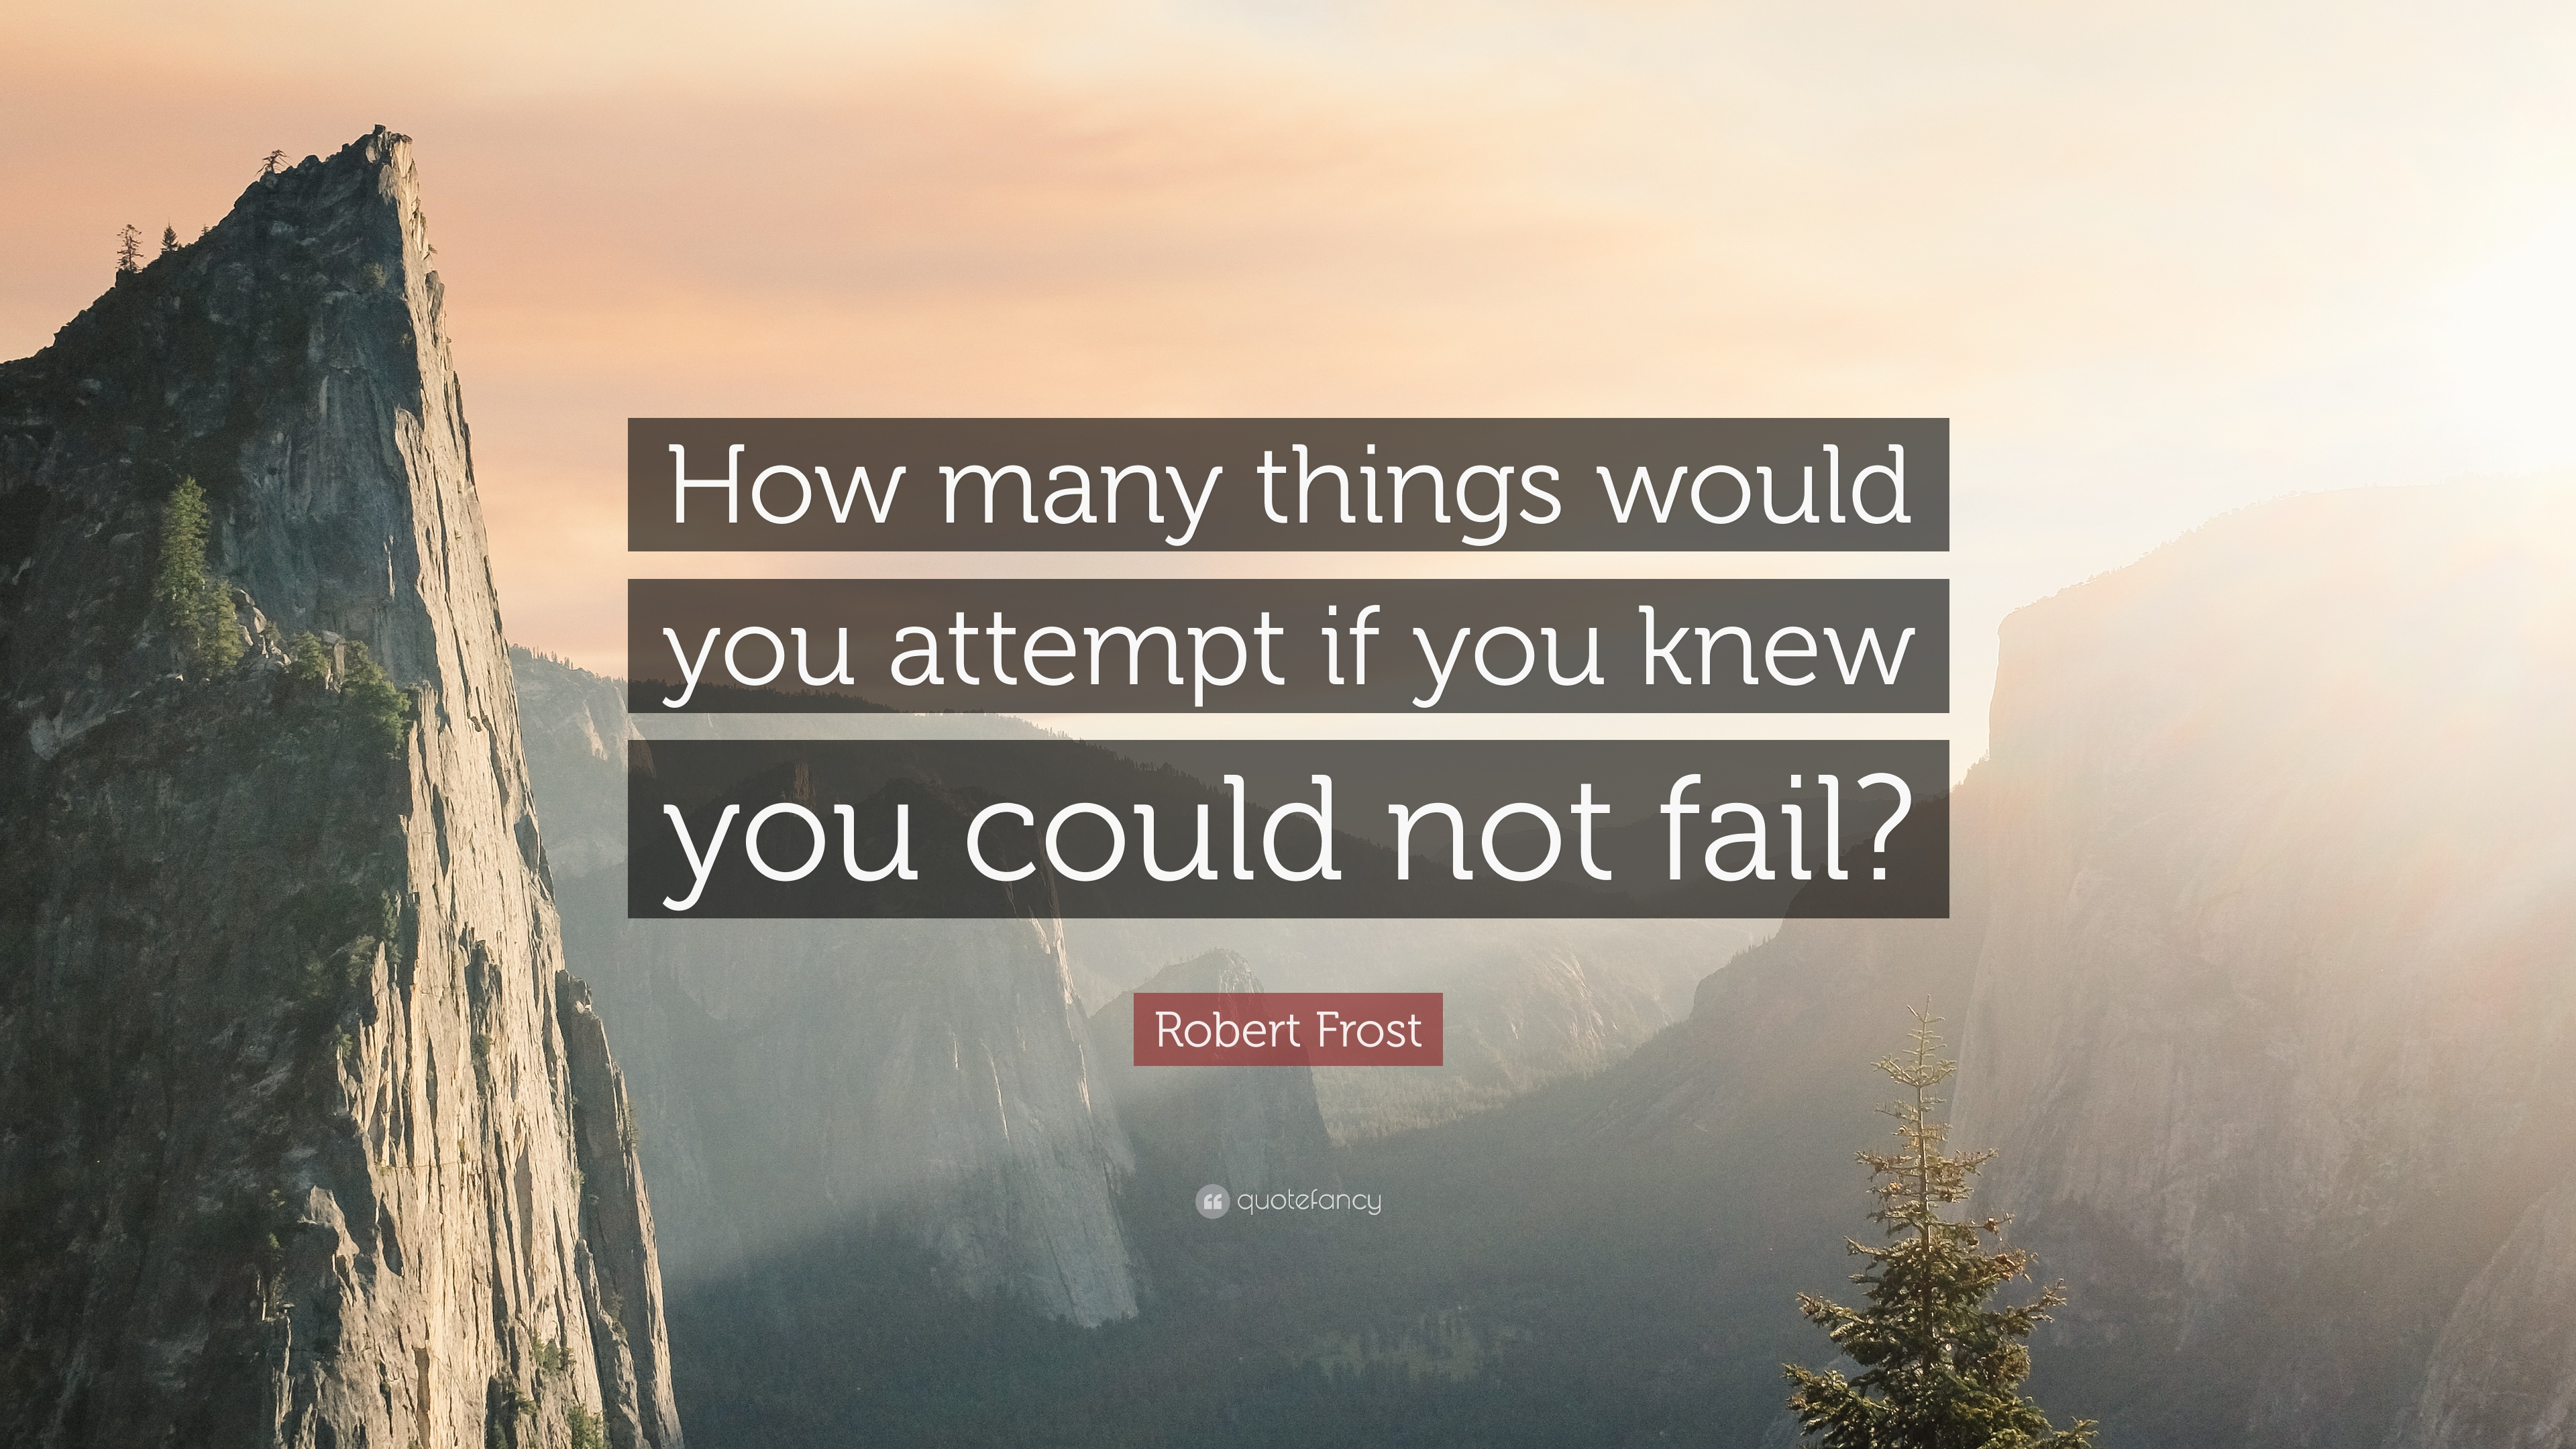 Robert Frost Quote How Many Things Would You Attempt If You Knew You Could Not Fail 20 Wallpapers Quotefancy